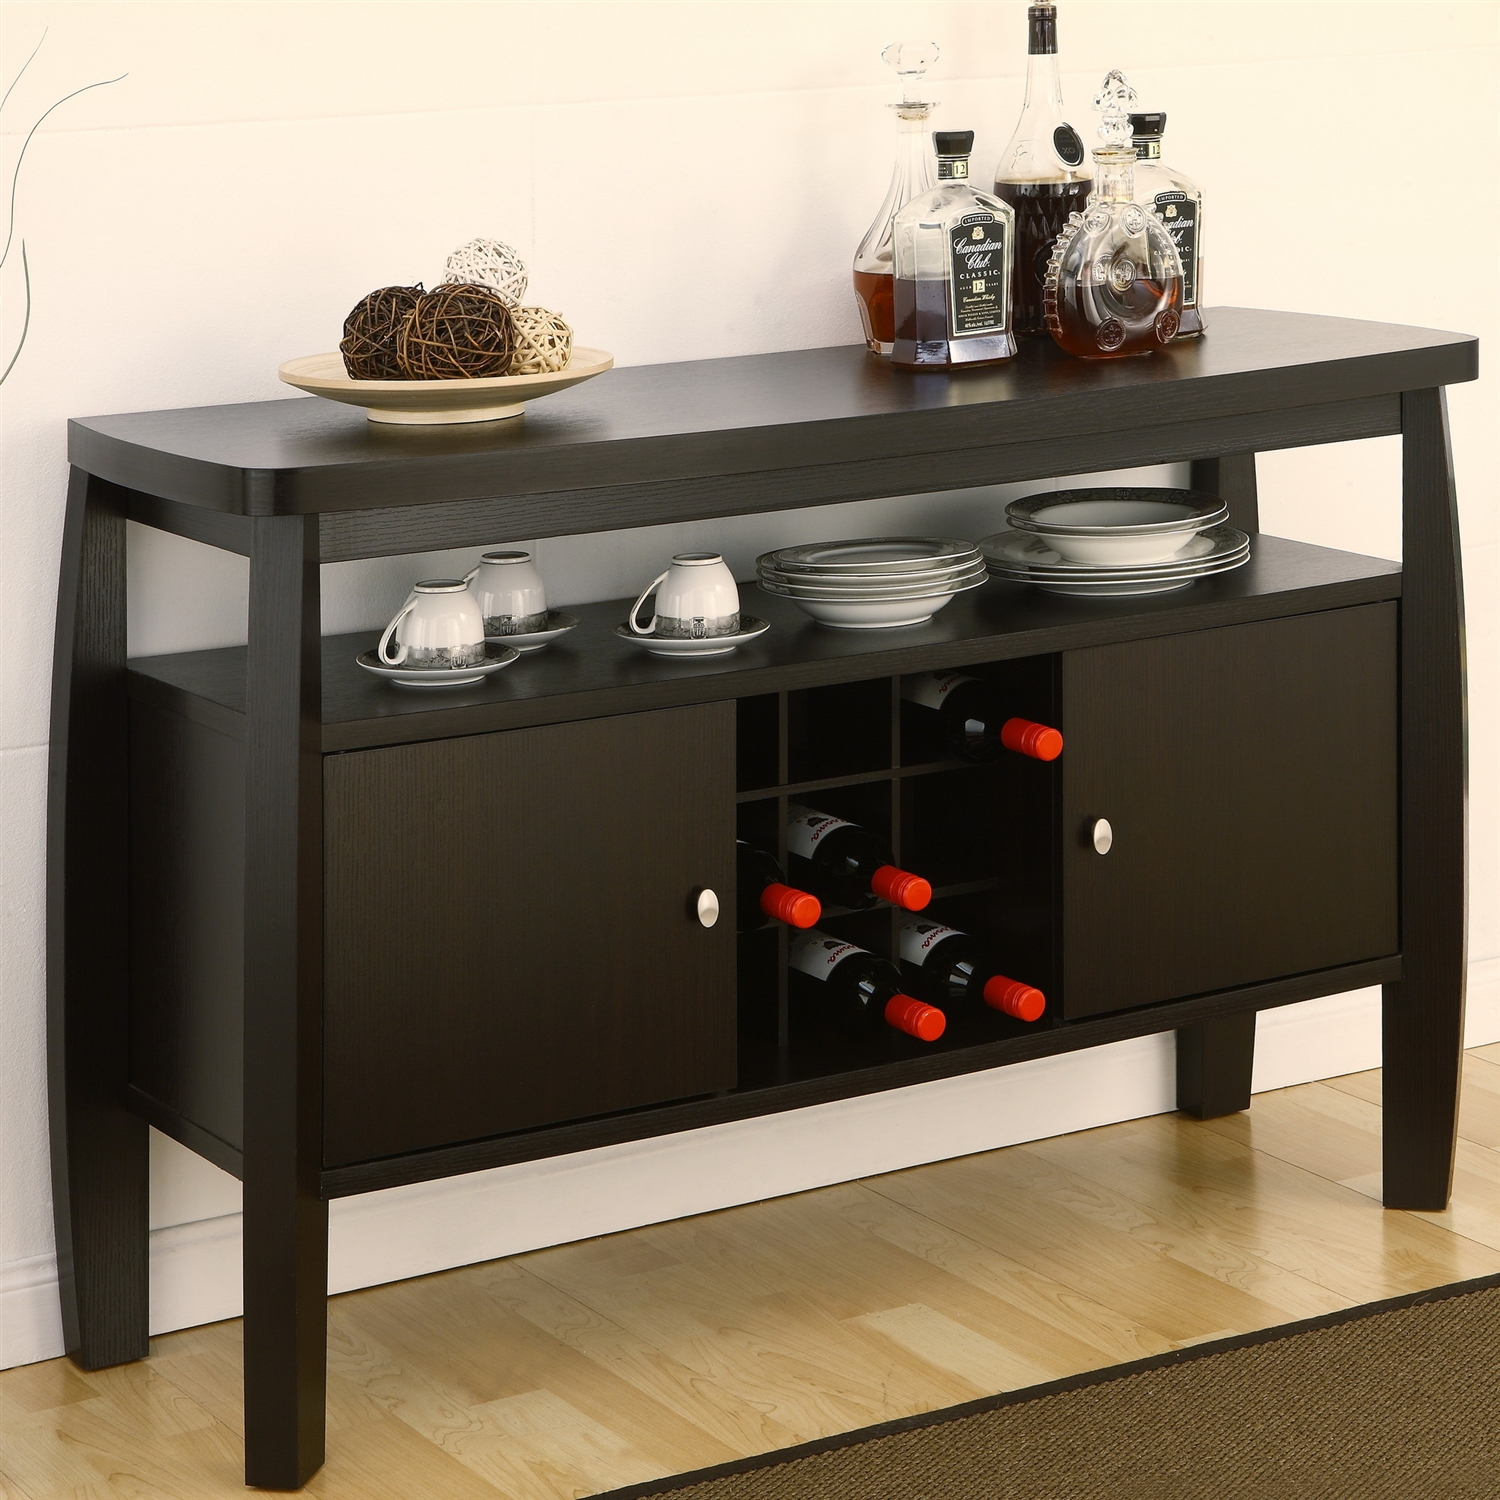 Creativeworks home decor sideboards buffets for Dining room sideboards modern